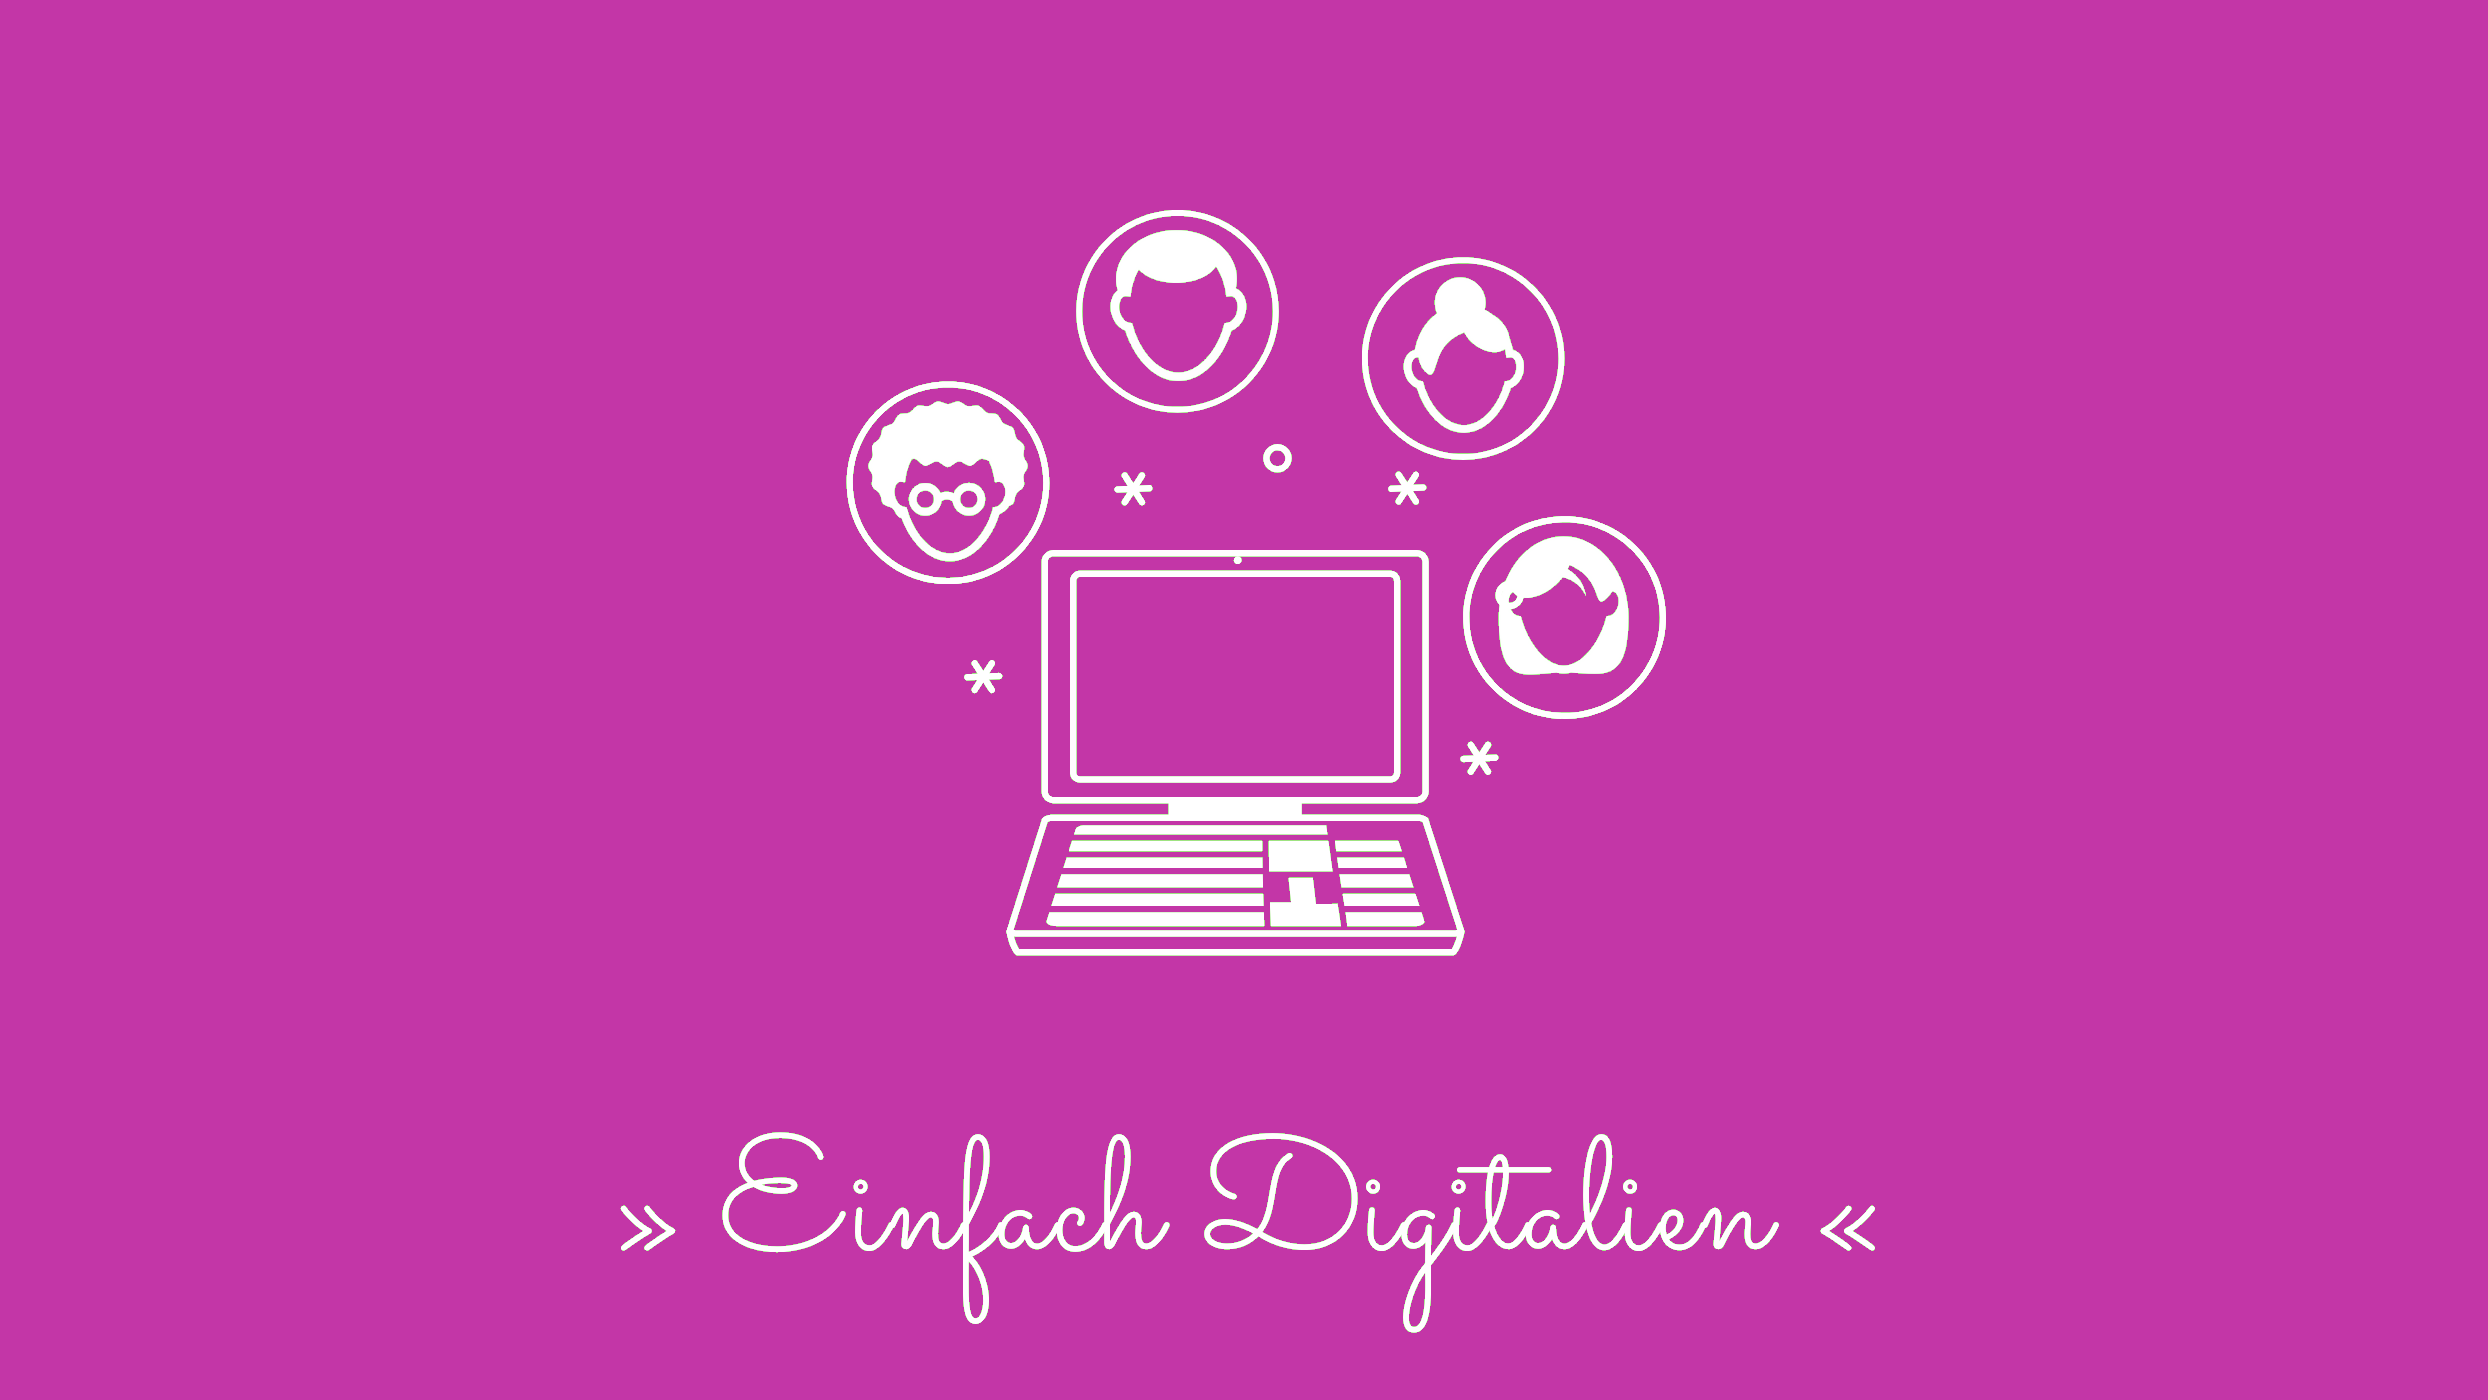 Visual Einfach Digitalien by DoSchu